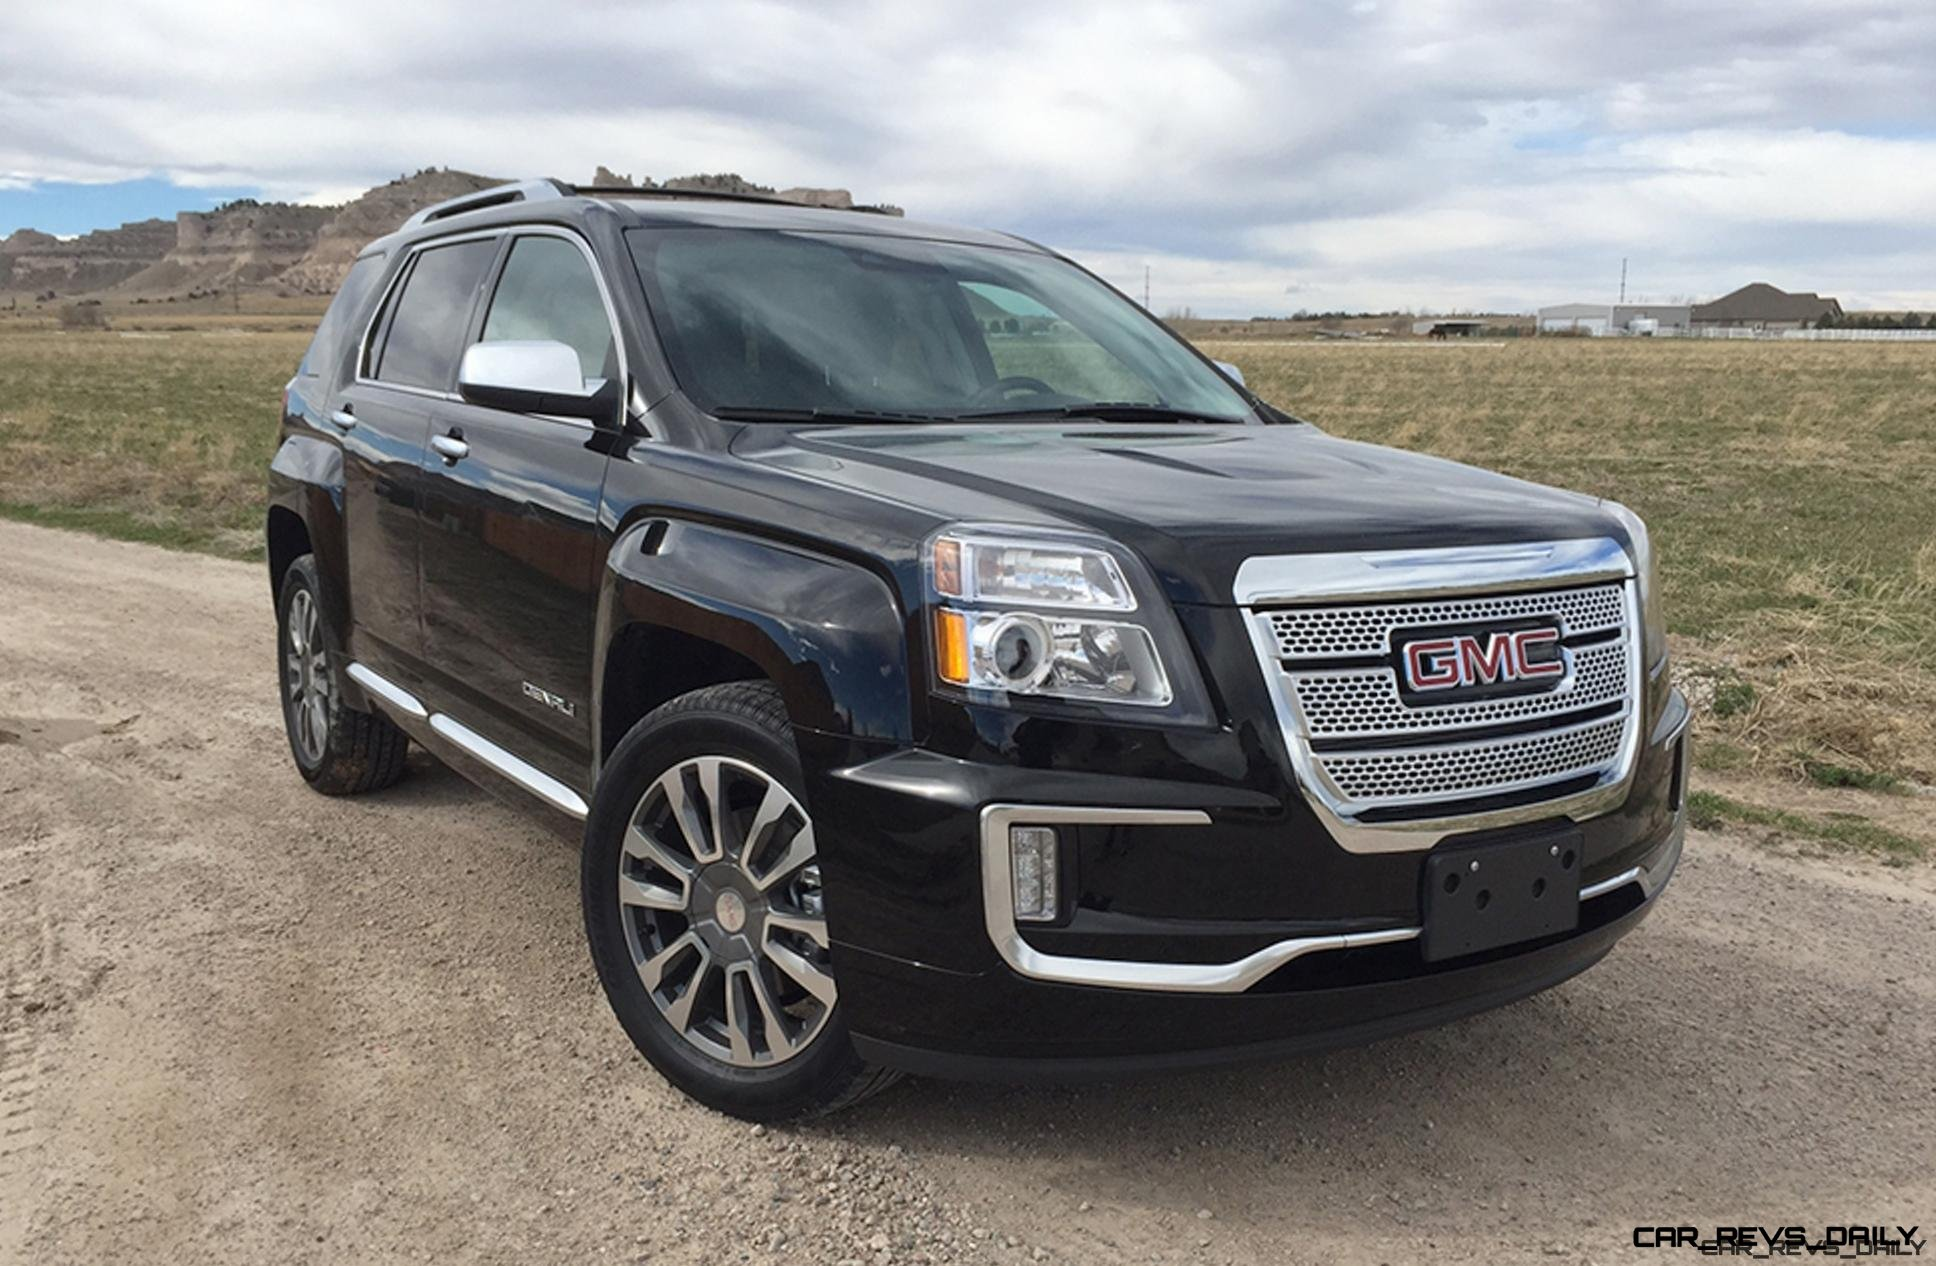 Road Test Review - 2016 GMC Terrain Denali AWD - By Tim ...